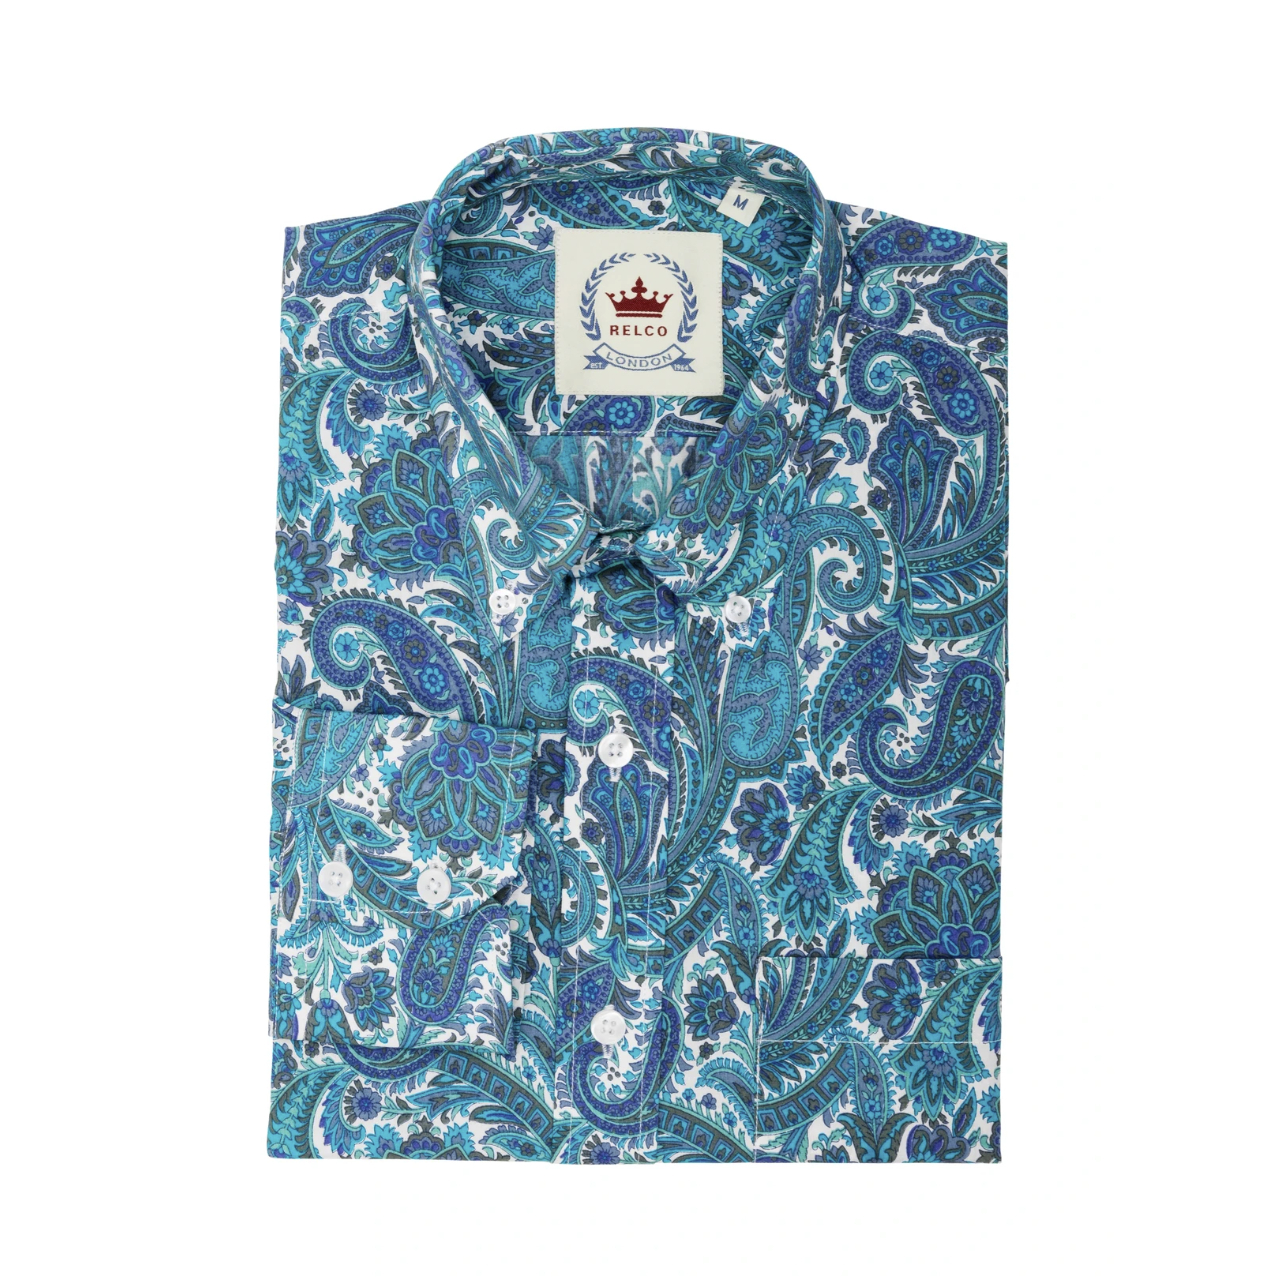 Relco London | Button Down Paisley Shirt - Turquoise